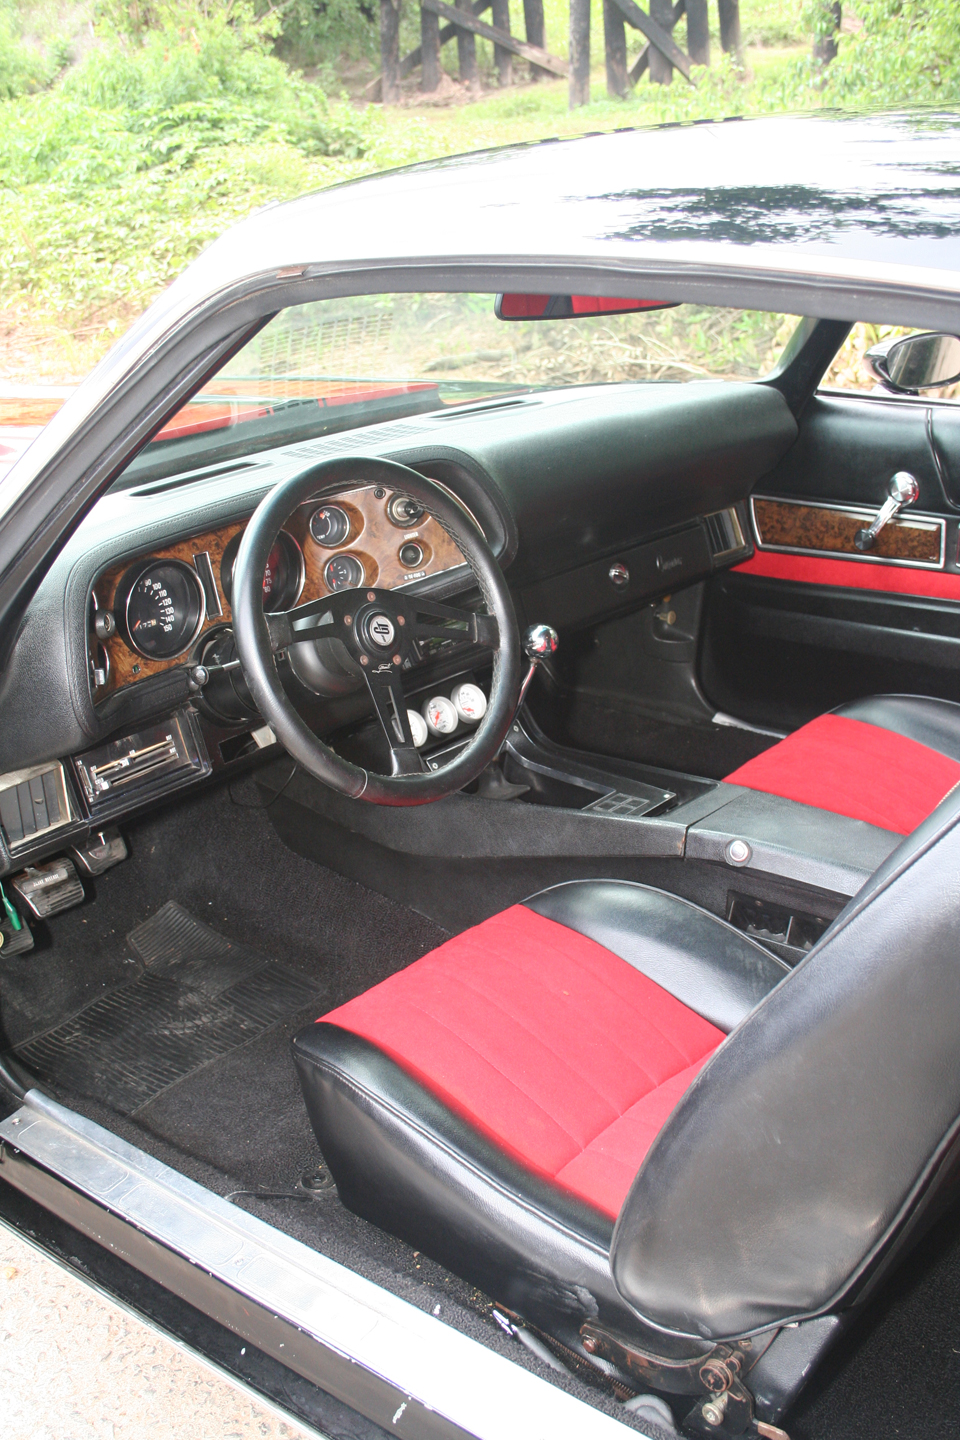 1970 CHEVROLET CAMARO Z/28 2 DOOR SPORT COUPE - Interior - 66066